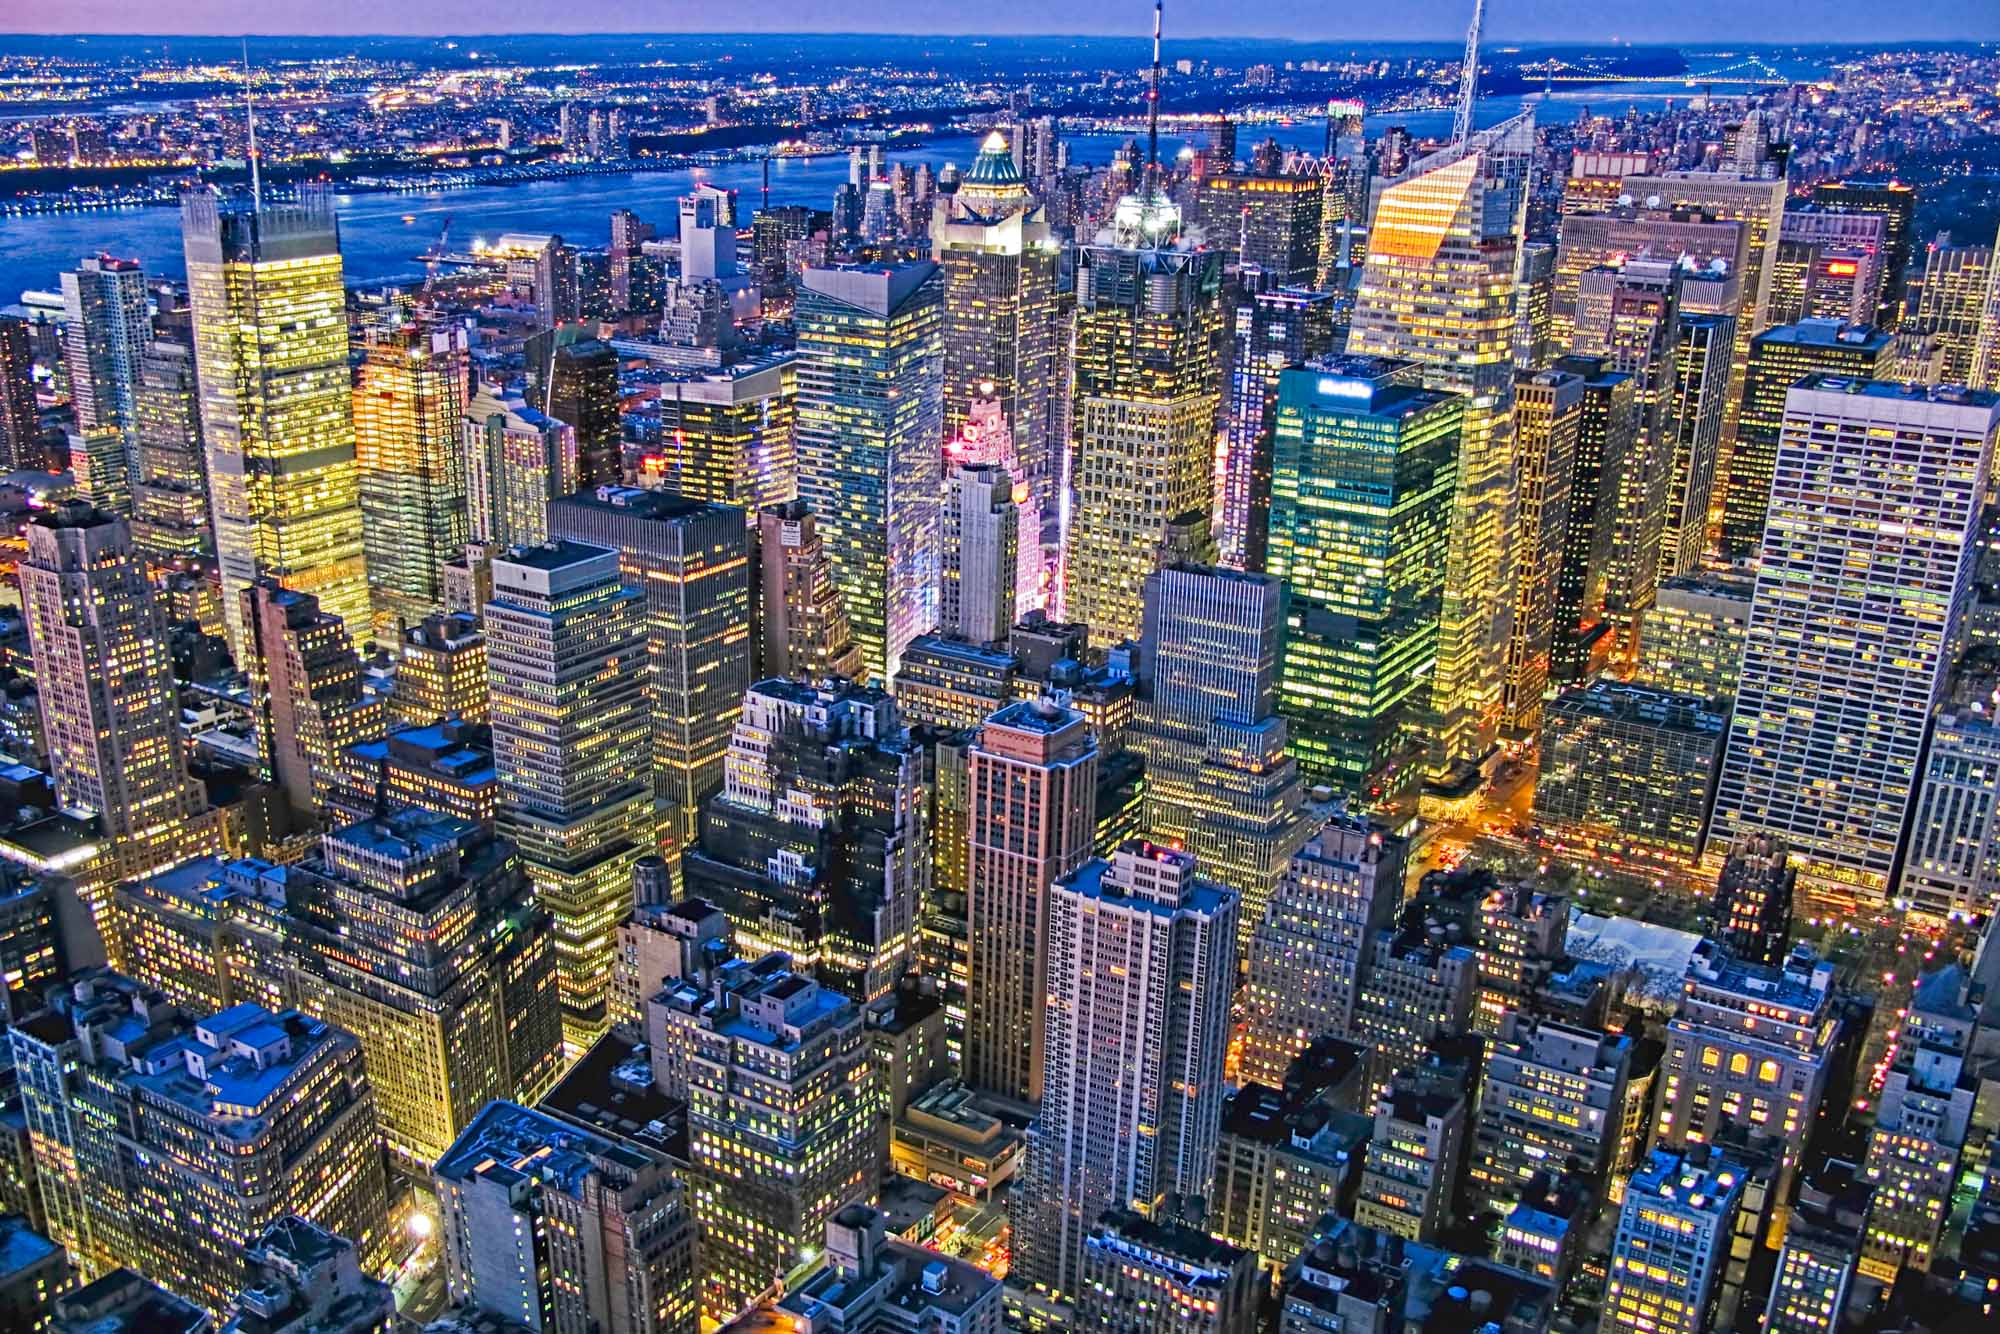 long exposure night photography of Midtown Manhattan New York City viewed from above in USA